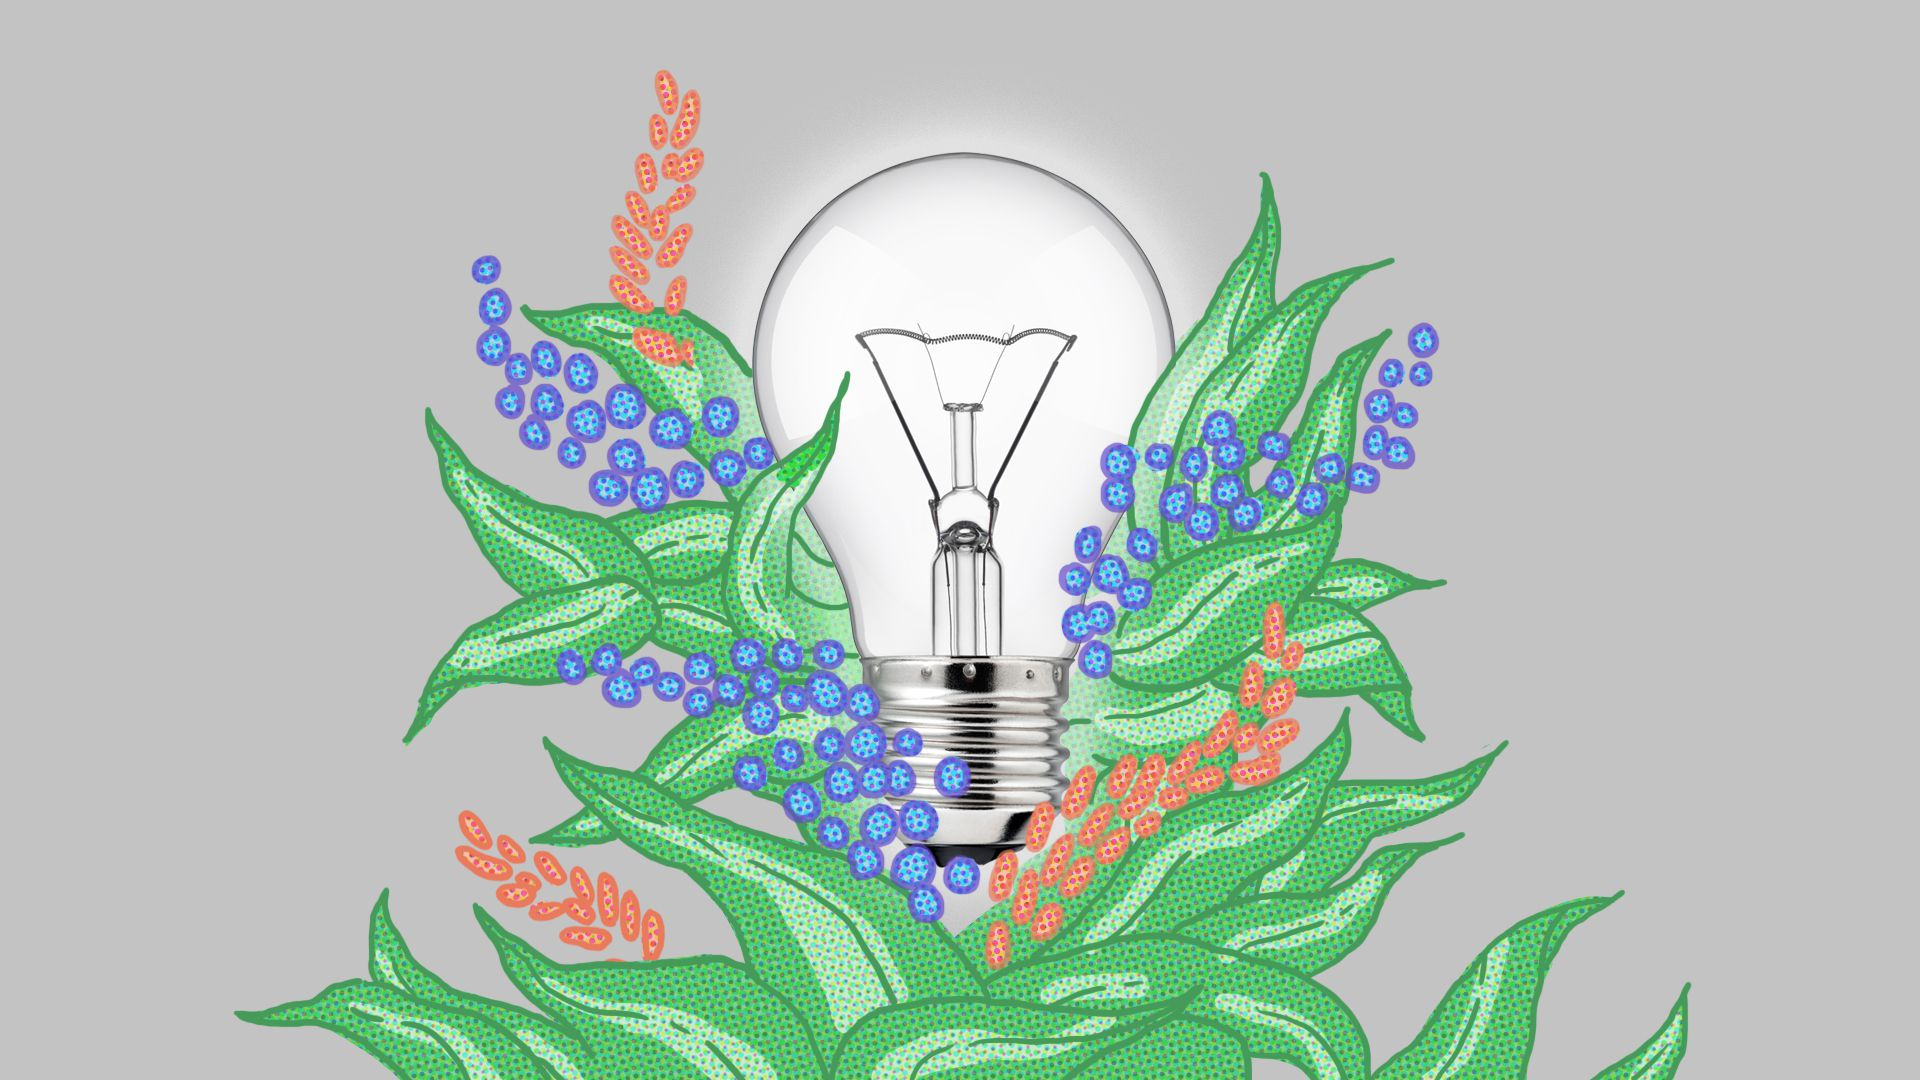 A bright light bulb surrounded by foliage